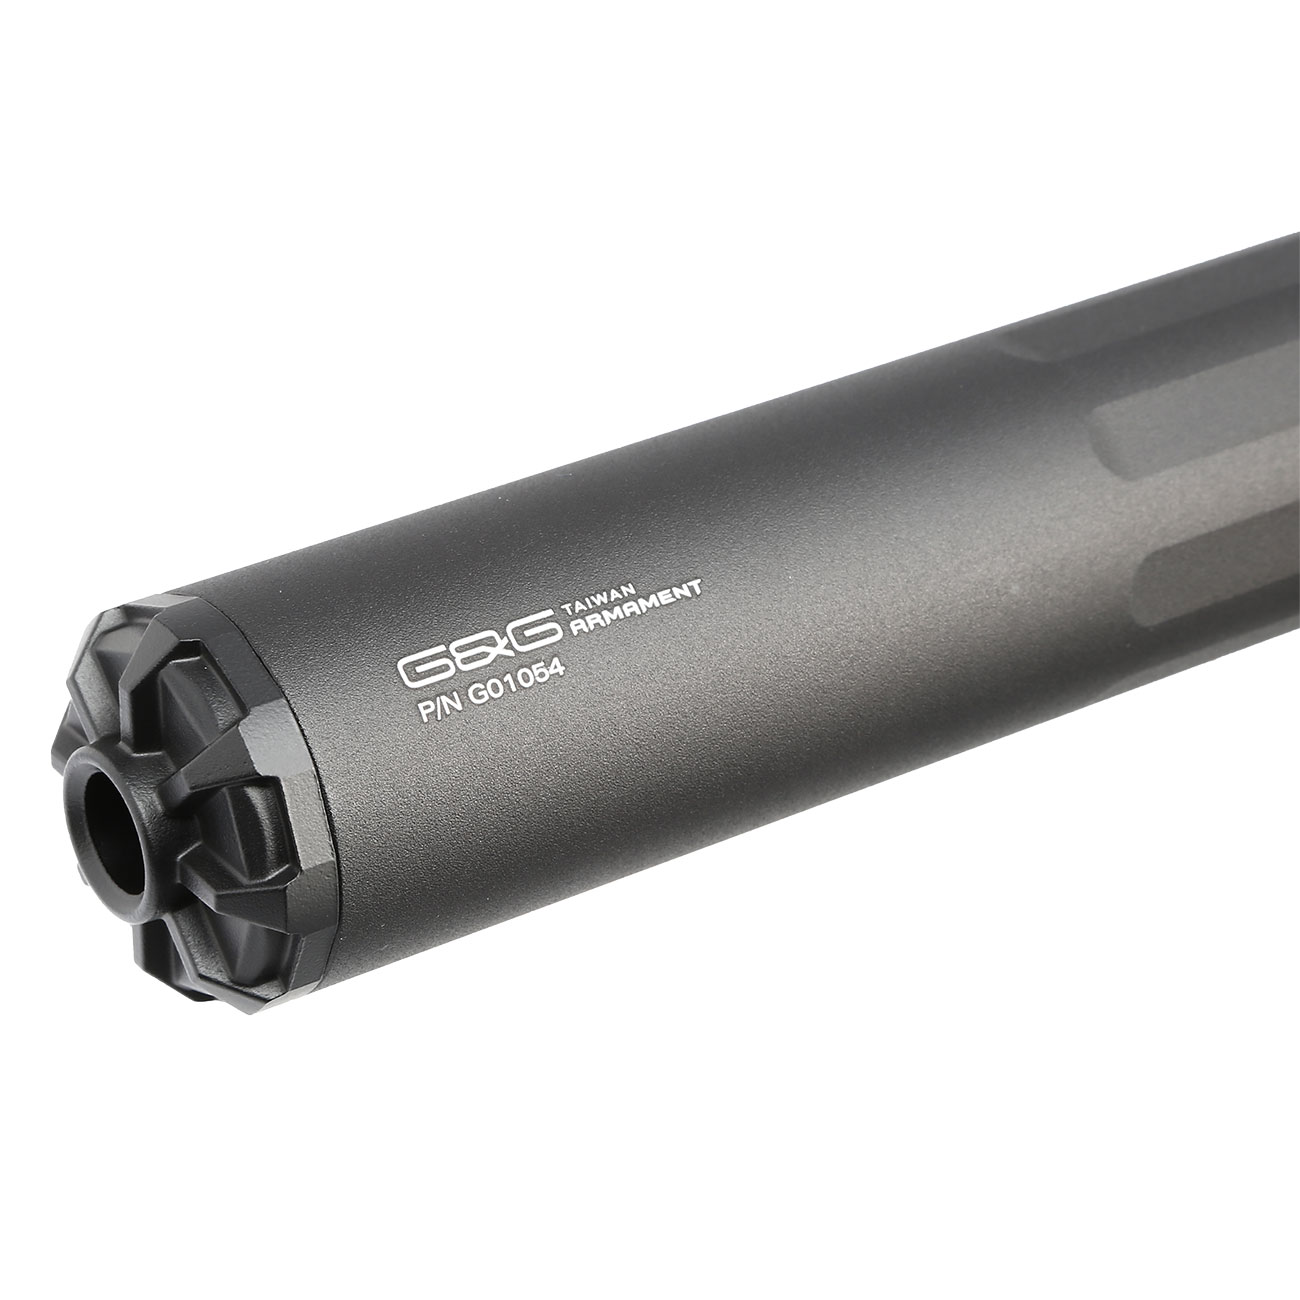 G&G GOMS MK1 Aluminium Tactical Silencer 210mm 14mm- schwarz 4